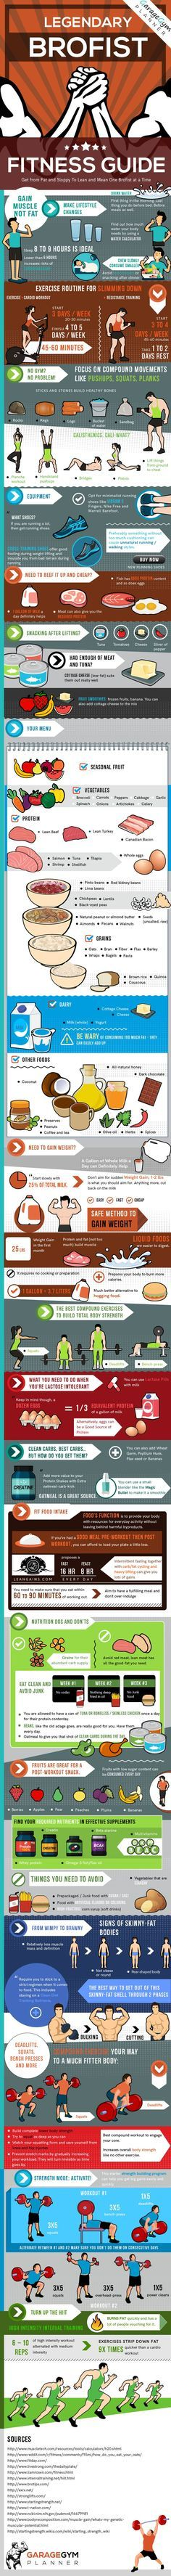 The Legendary Guide To Fitness Workouts Infographic! If you are interested you can check - Science-Based Bodyweight Workout: Build Muscle Without A Gym